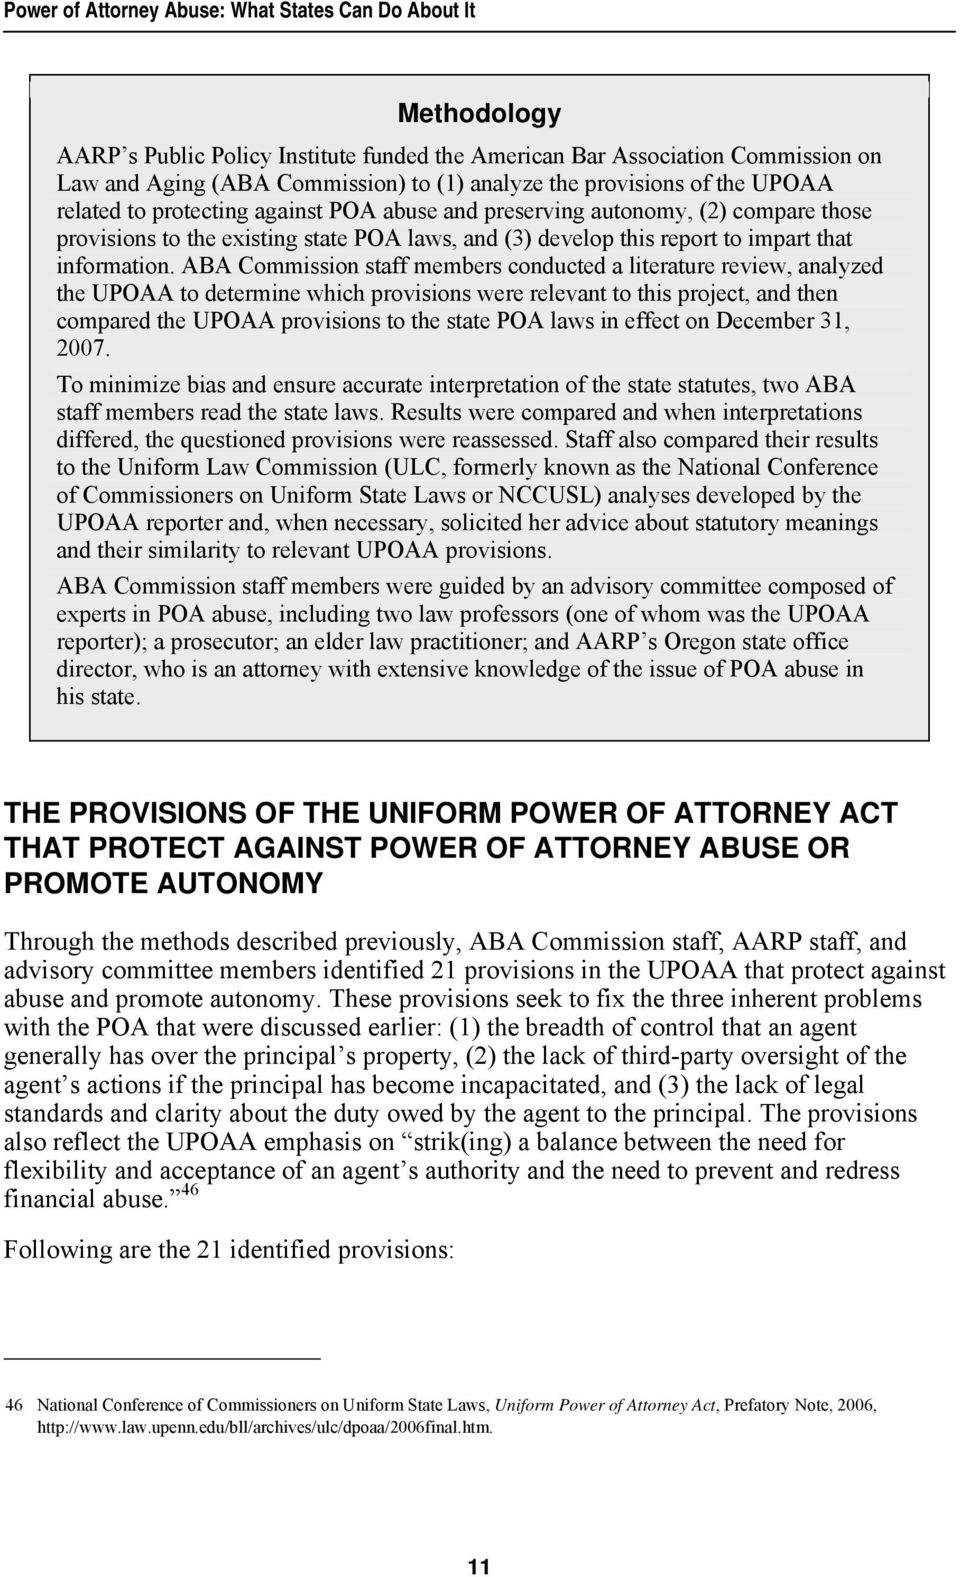 ABA Commission staff members conducted a literature review, analyzed the UPOAA to determine which provisions were relevant to this project, and then compared the UPOAA provisions to the state POA